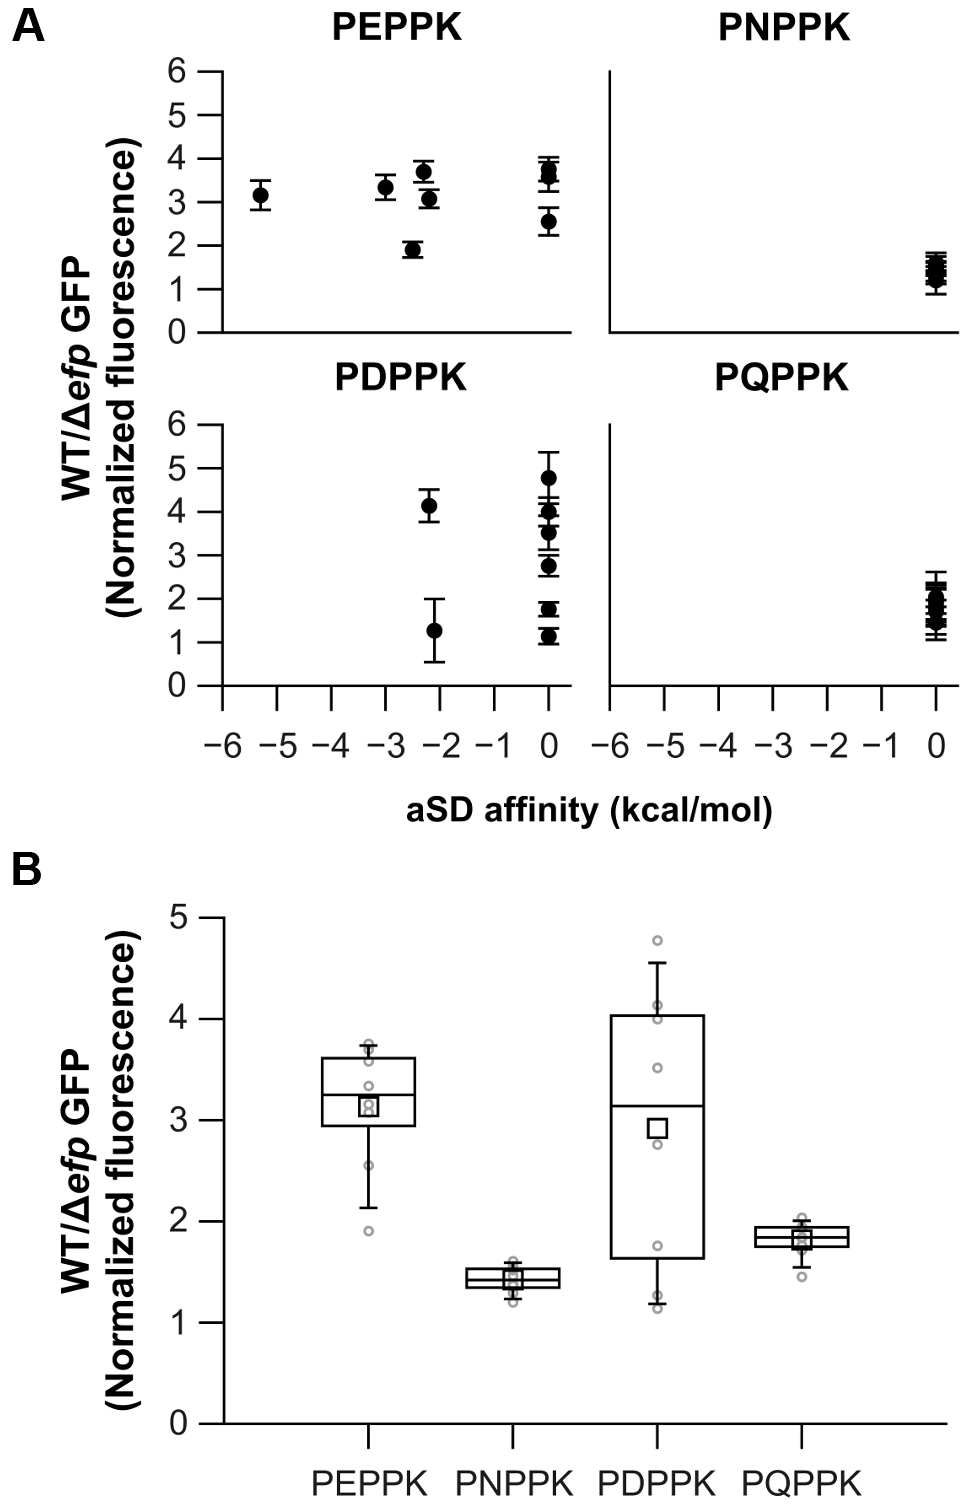 Effects on translation pausing of aSD affinity and the identity of the amino acid preceding PPX.